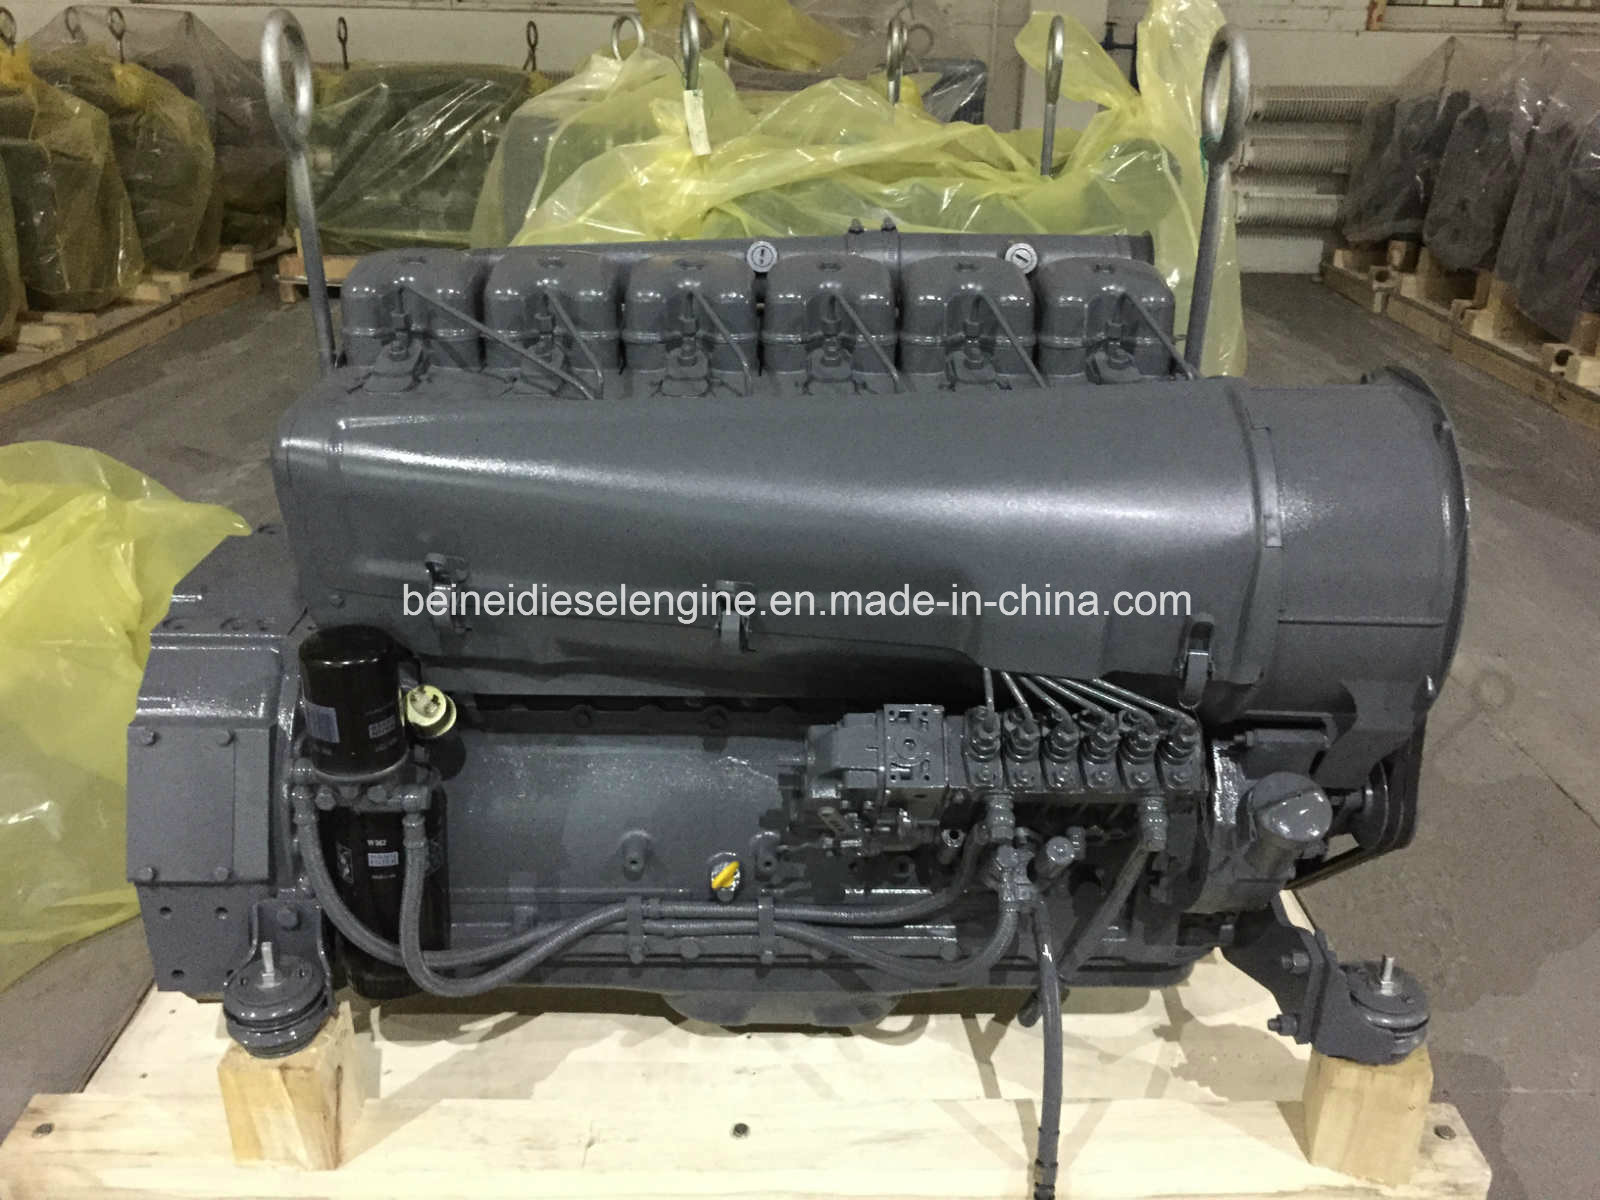 Beinei Deutz F6l914 Air Cooled Engine/Motor